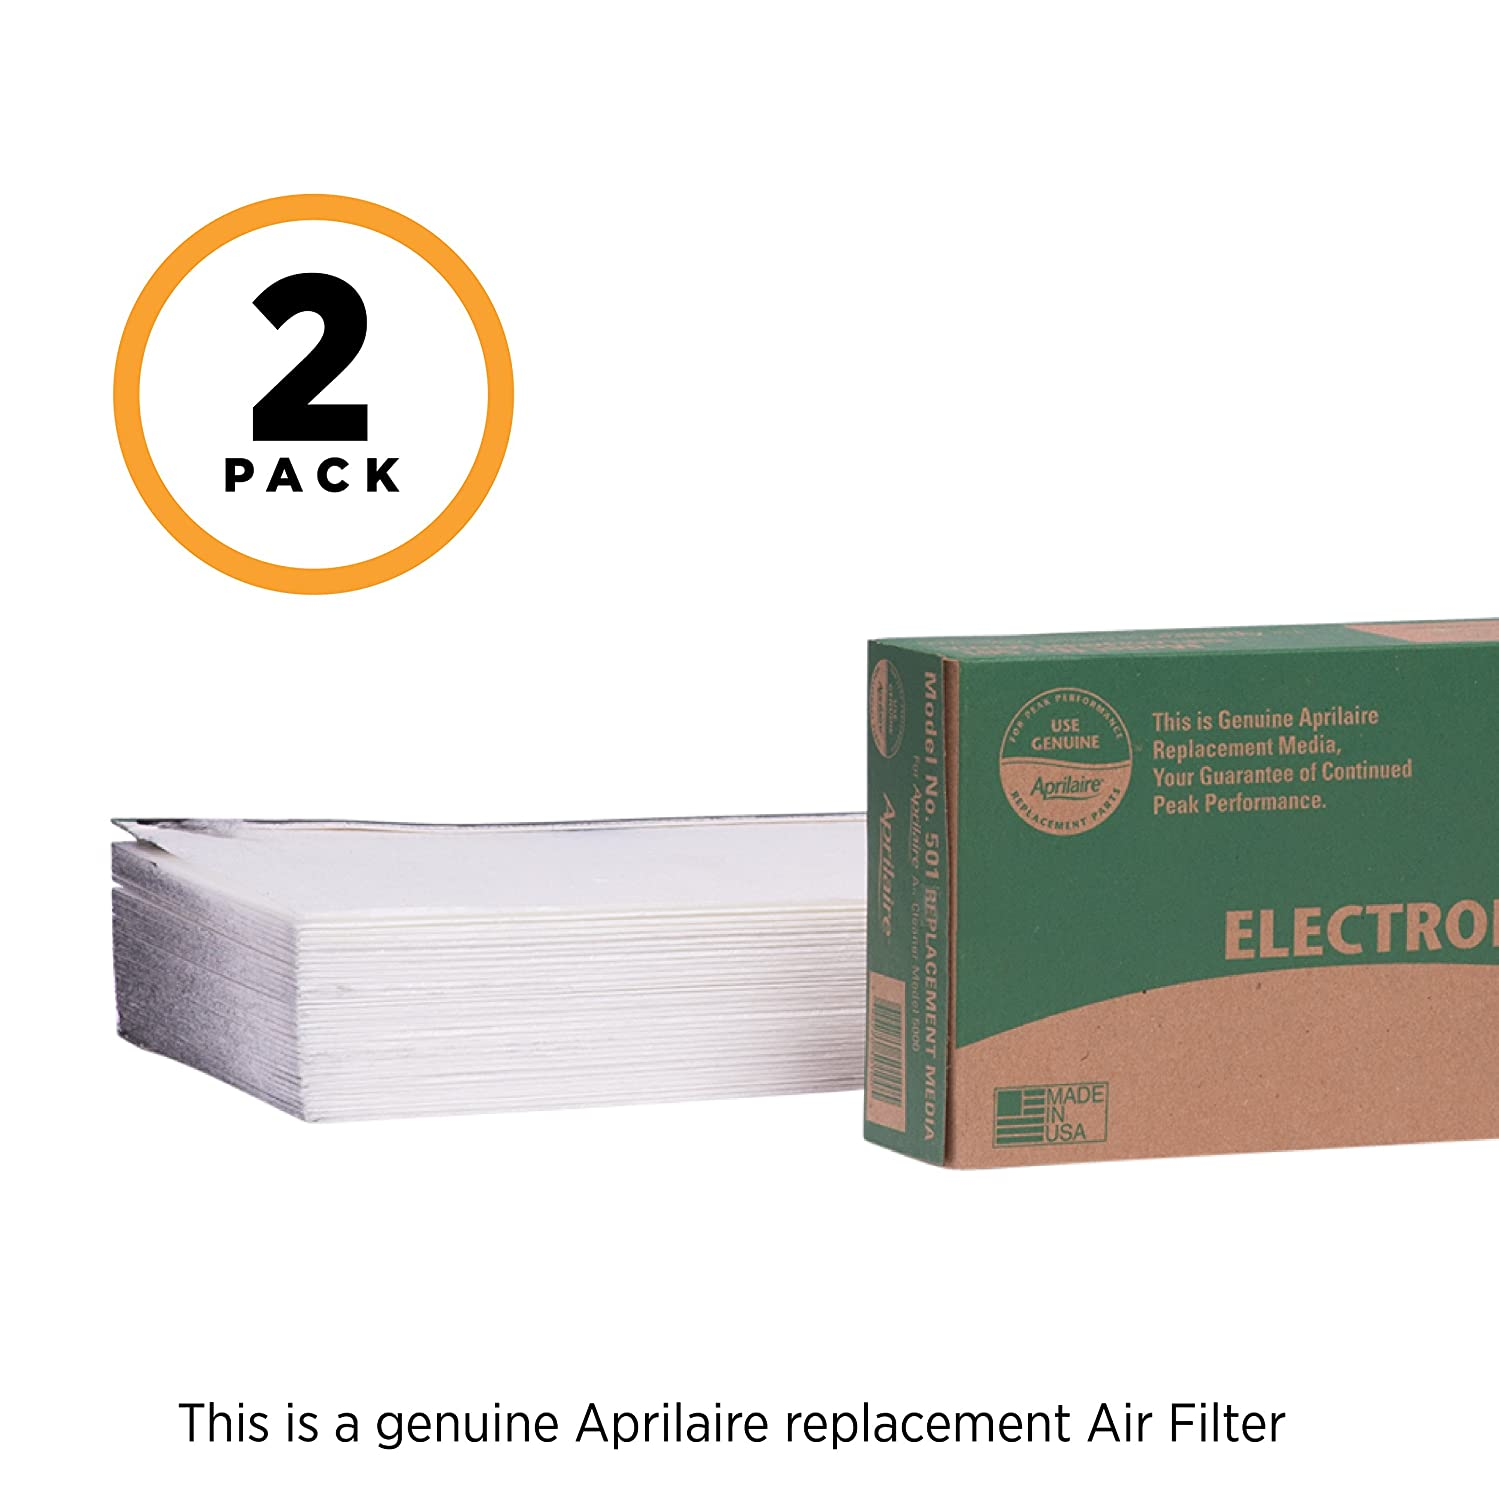 Aprilaire 501 Replacement Filter for Aprilaire Whole House Electronic Air Purifier Model: 5000, MERV 16 (Pack of 2)